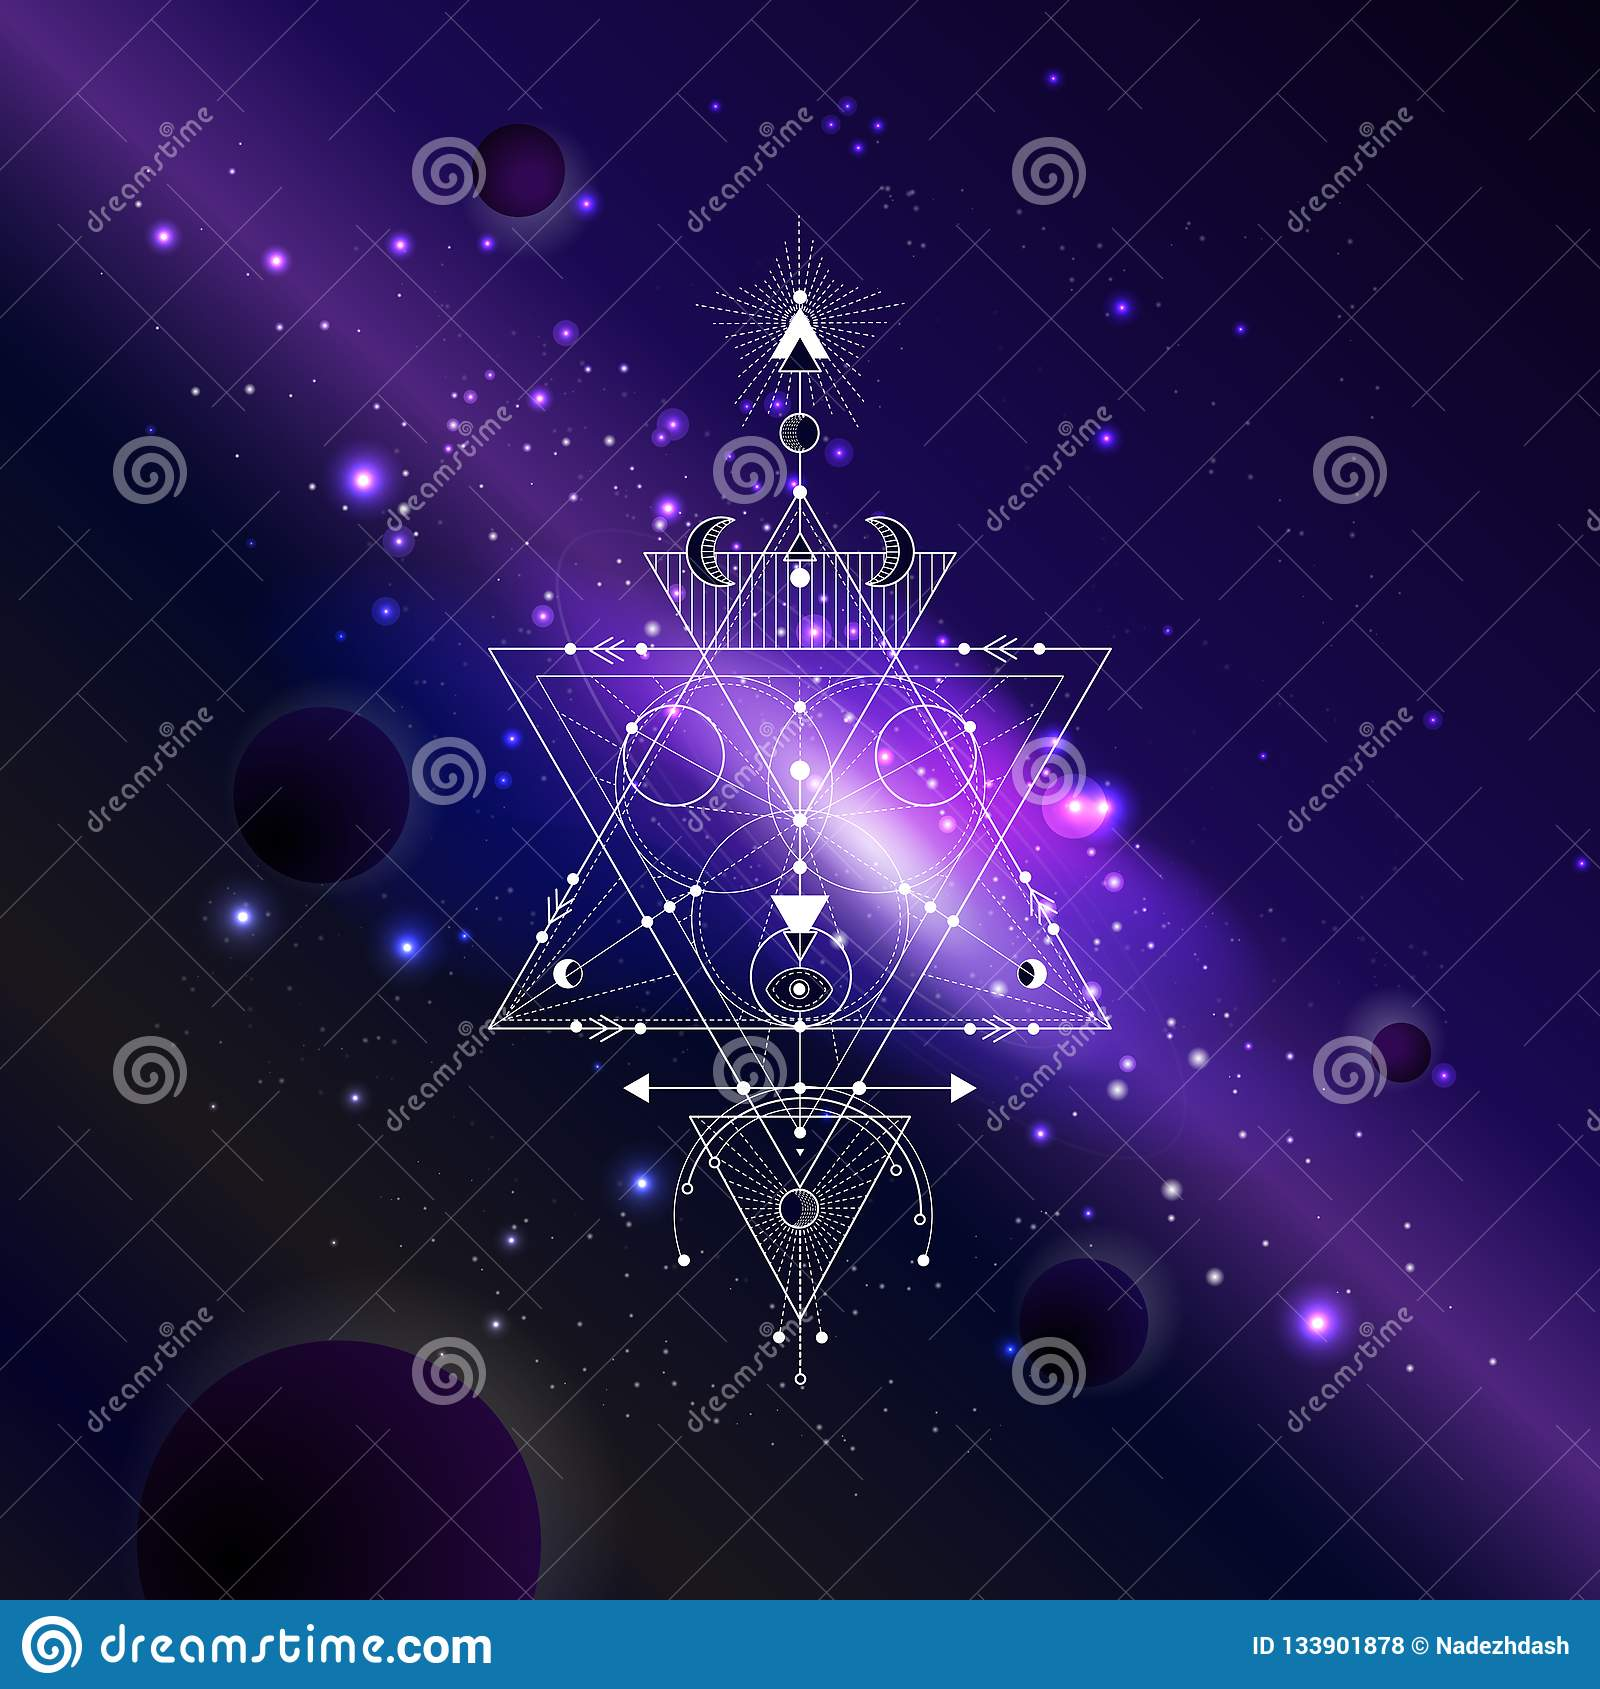 Vector Illustration Of Sacred Or Mystic Symbol Against The